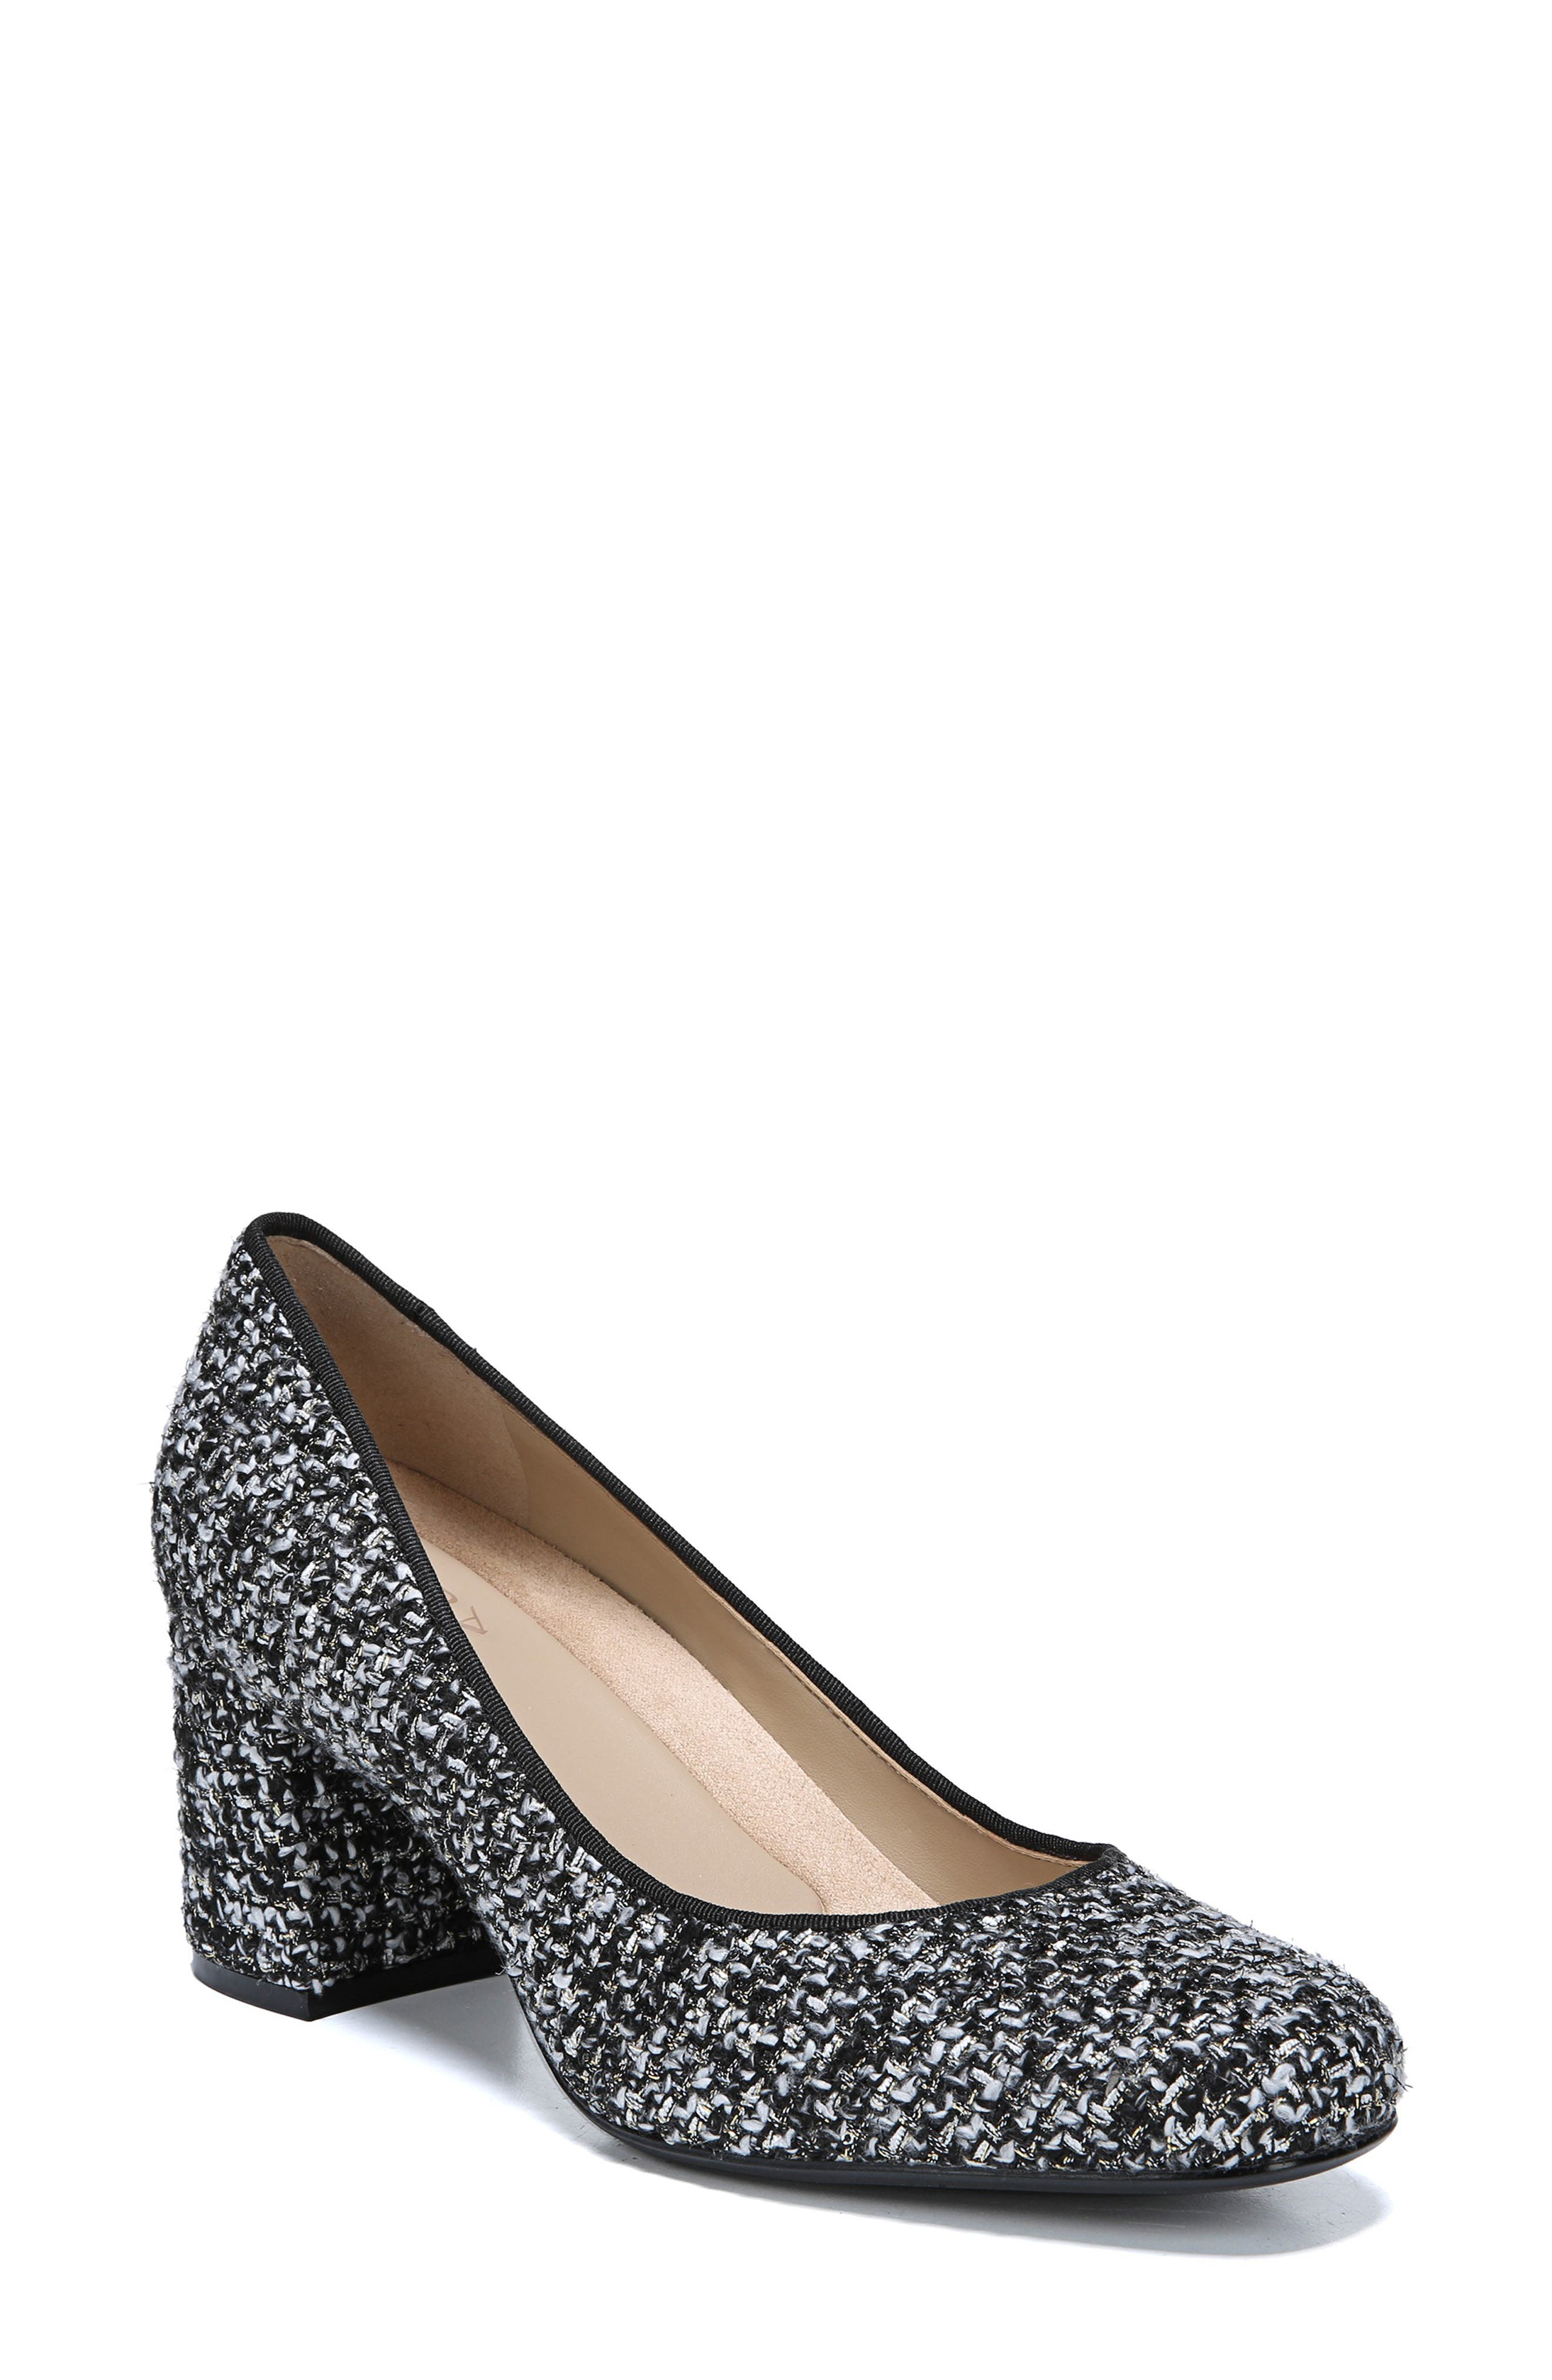 Whitney Pump,                         Main,                         color, BLACK/ WHITE TWEED FABRIC